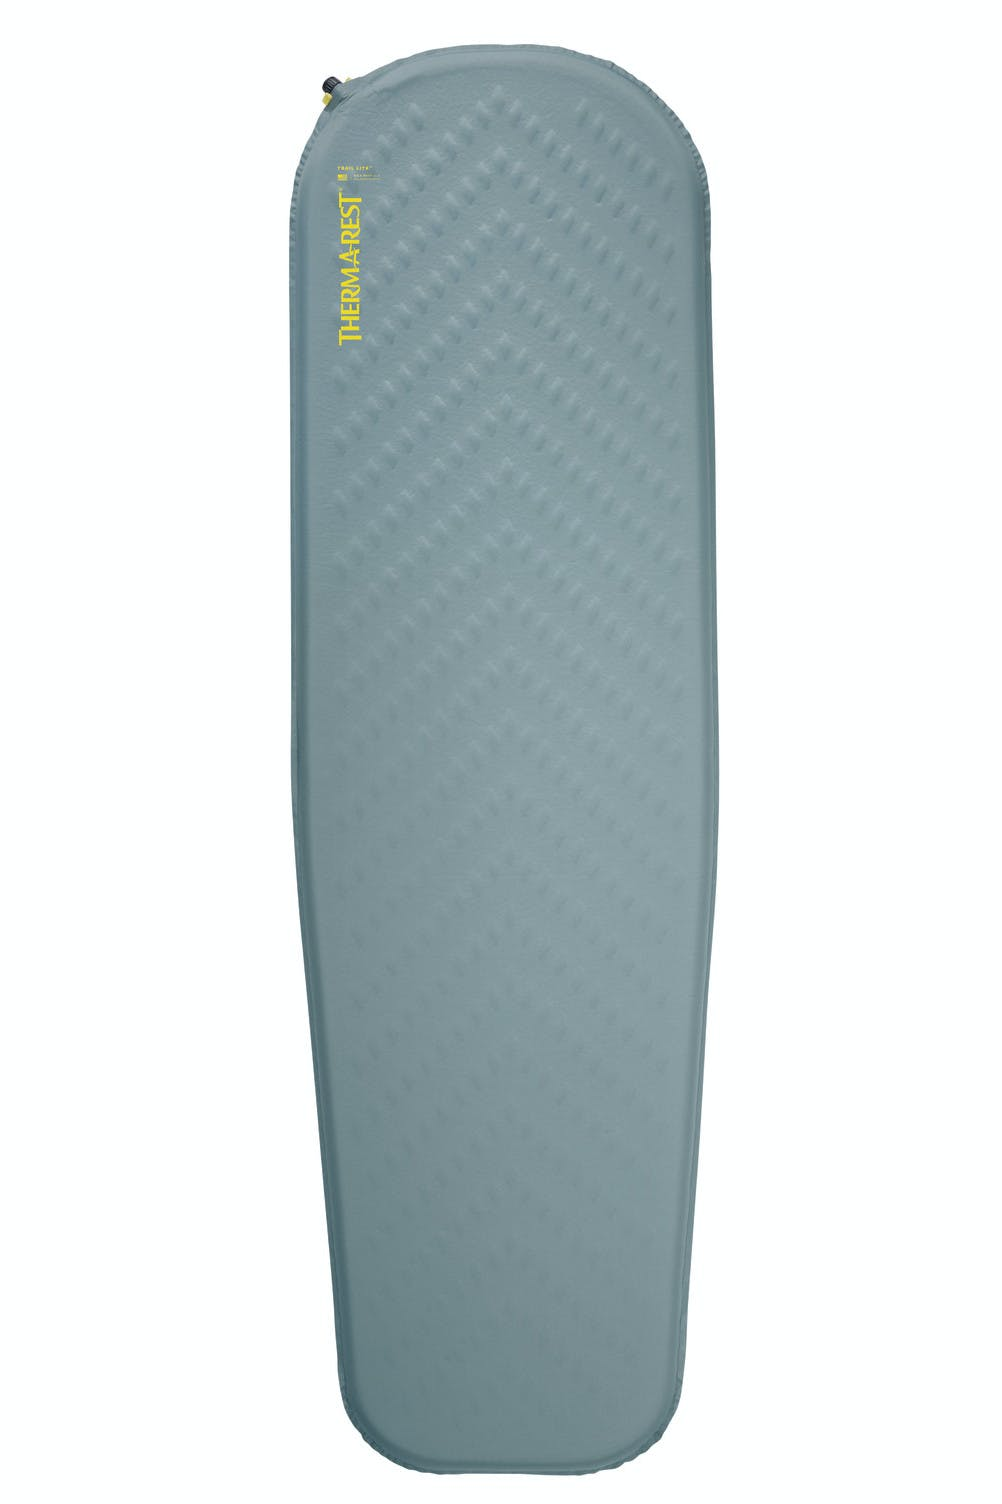 Therm-a-Rest Trail Lite Sleeping Pad - Trooper Large